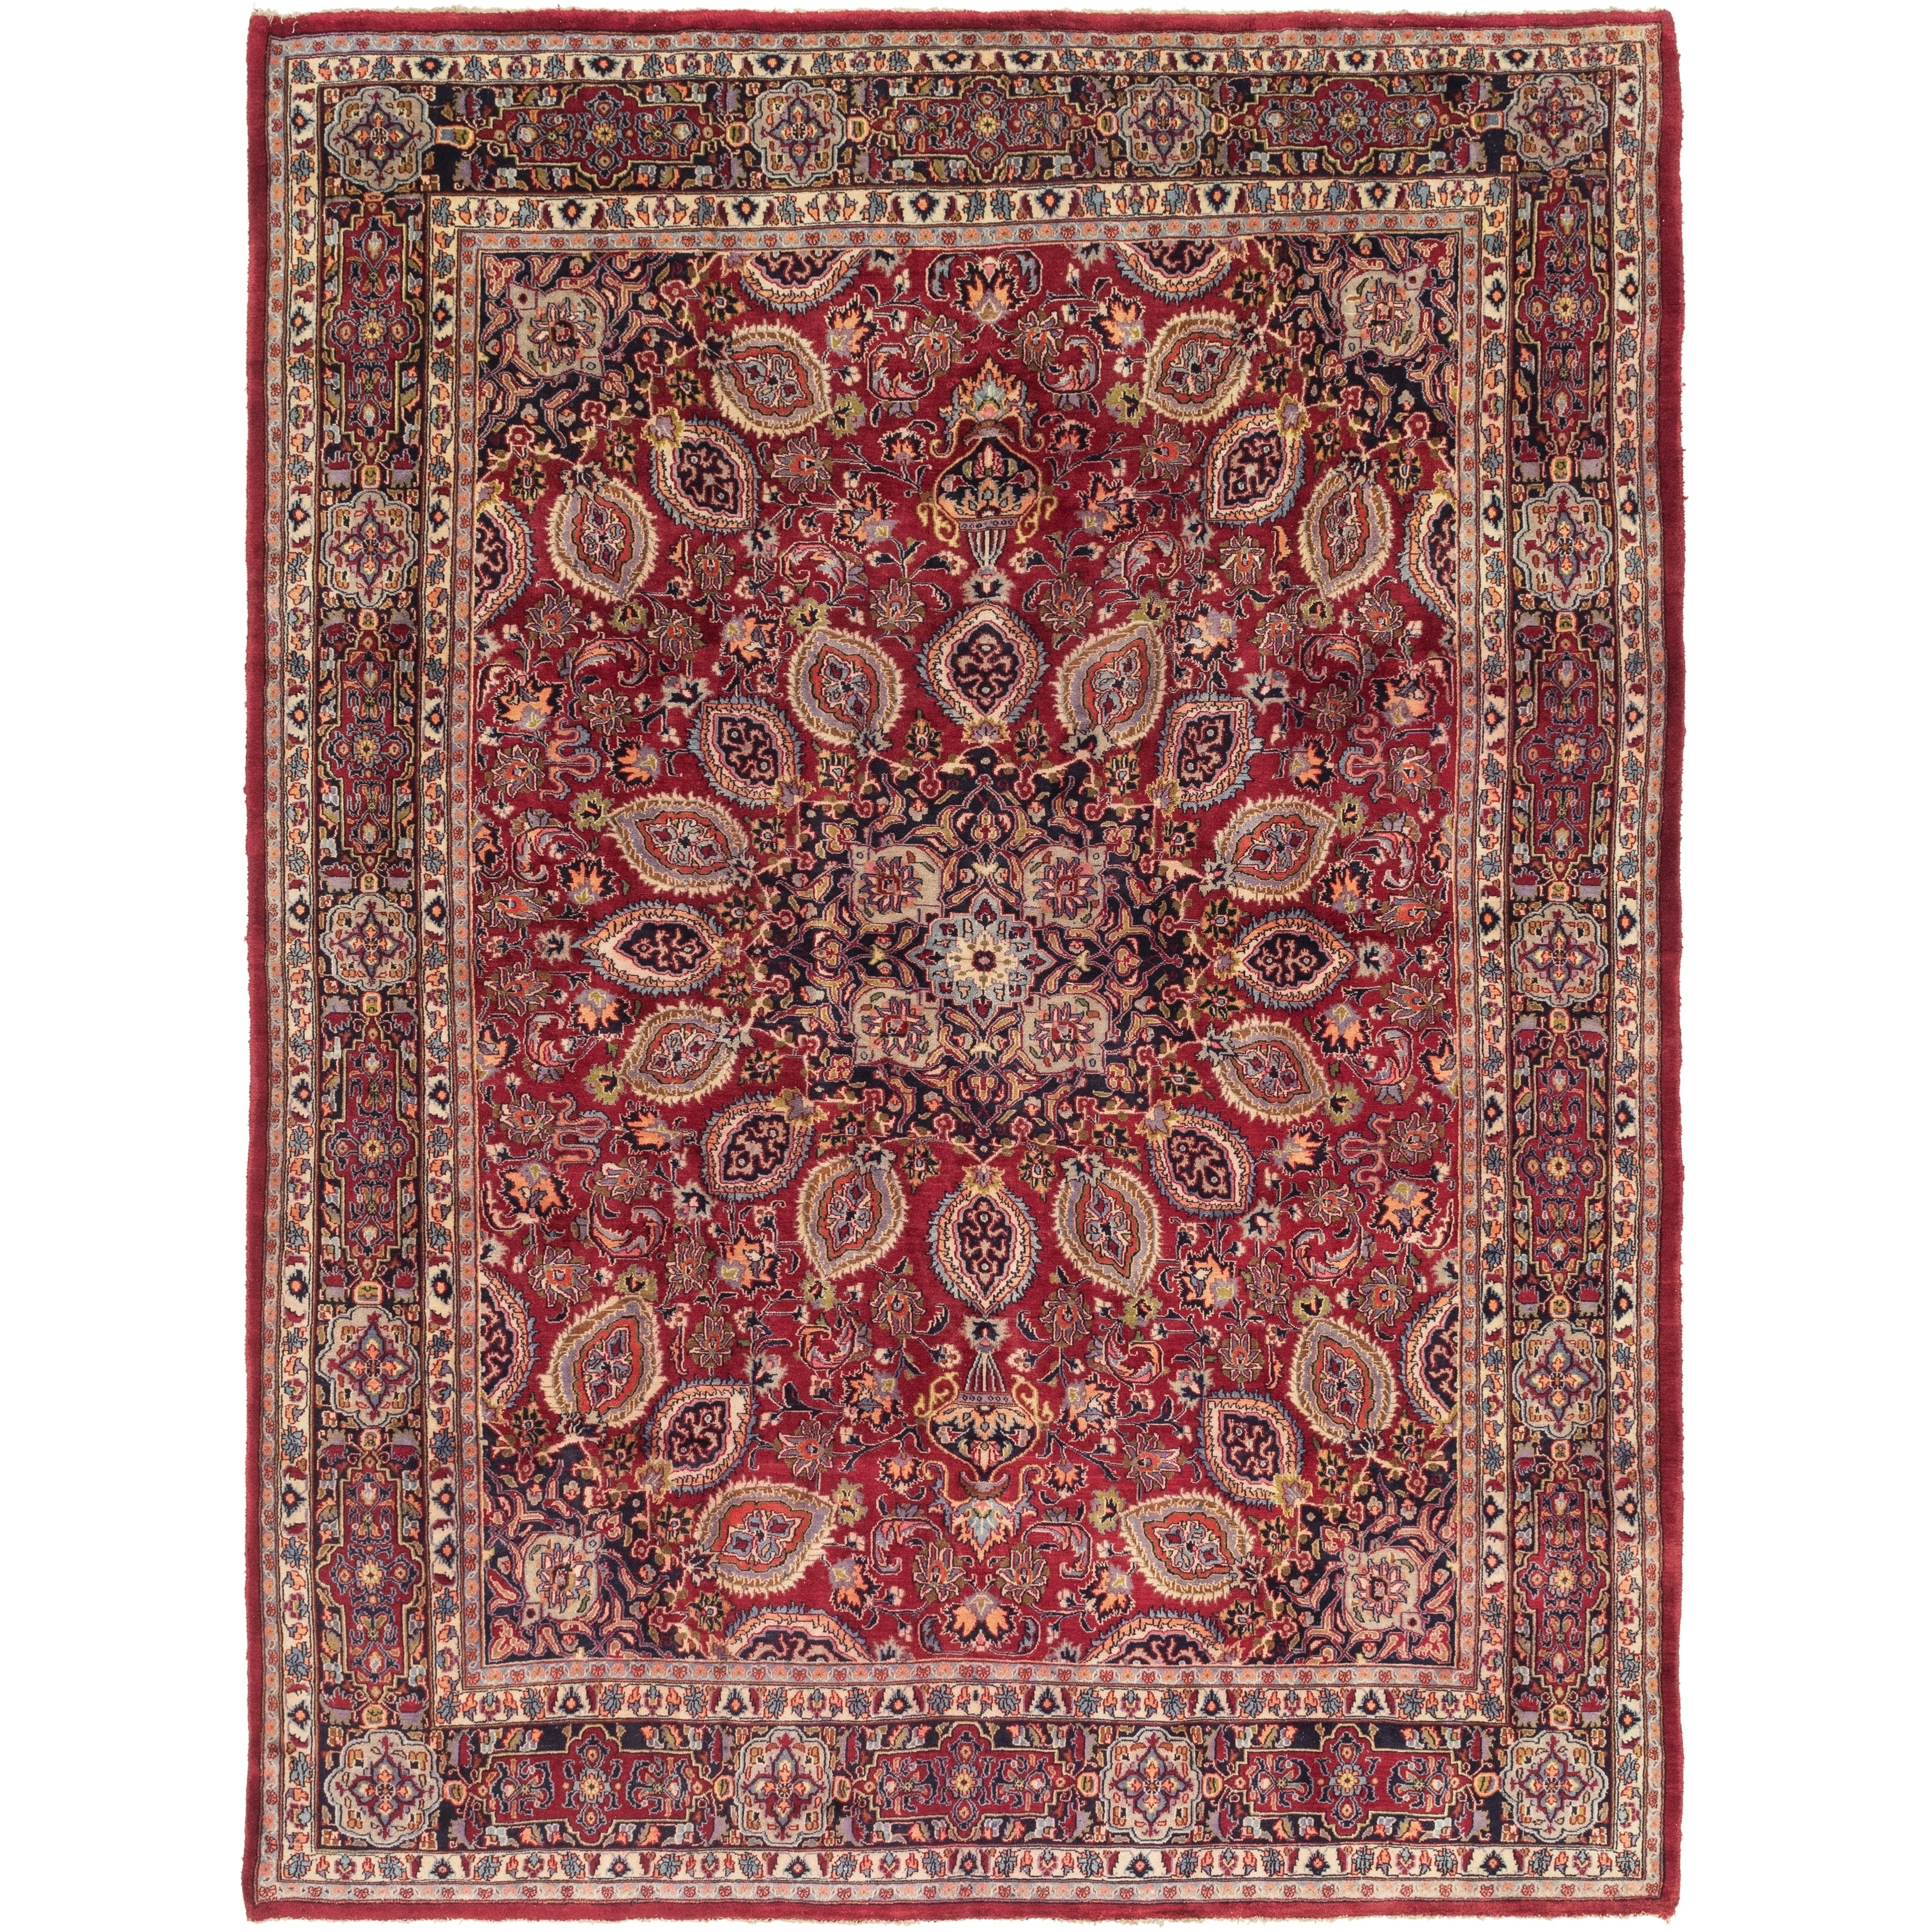 Hand Knotted Kashmar Wool Area Rug - 9 7 x 12 8 (Red - 9 7 x 12 8)